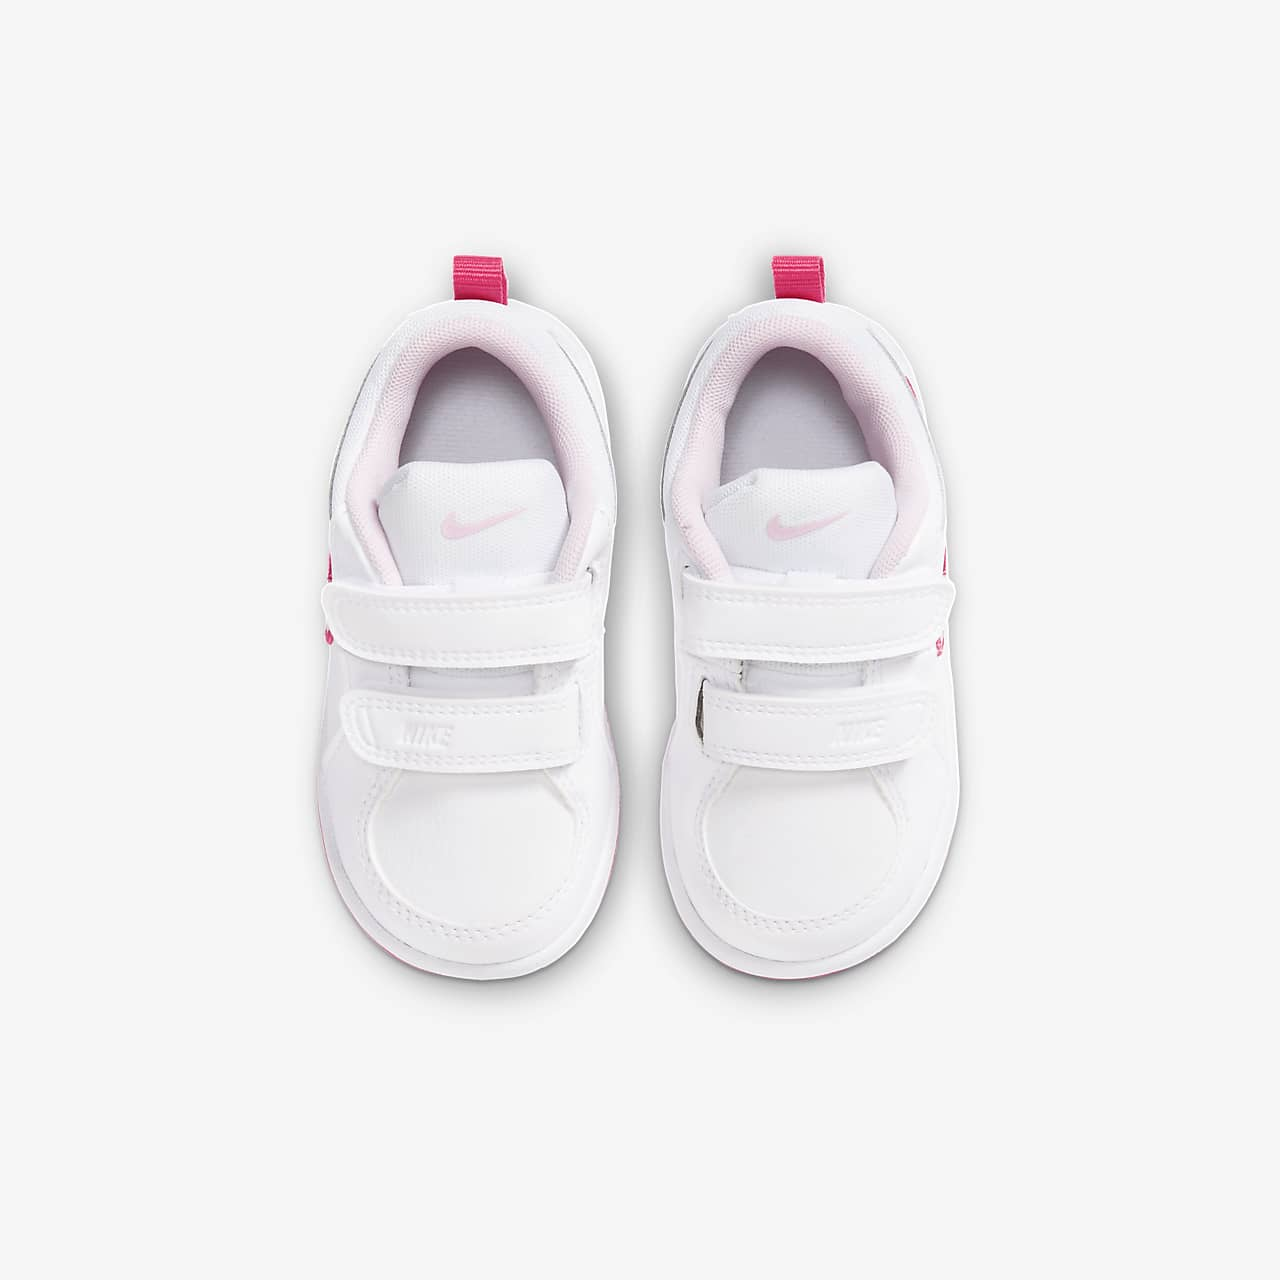 75e5de4b39e Nike Pico 4 (1.5–9.5) Baby and Toddler Girls  Shoe. Nike.com AU